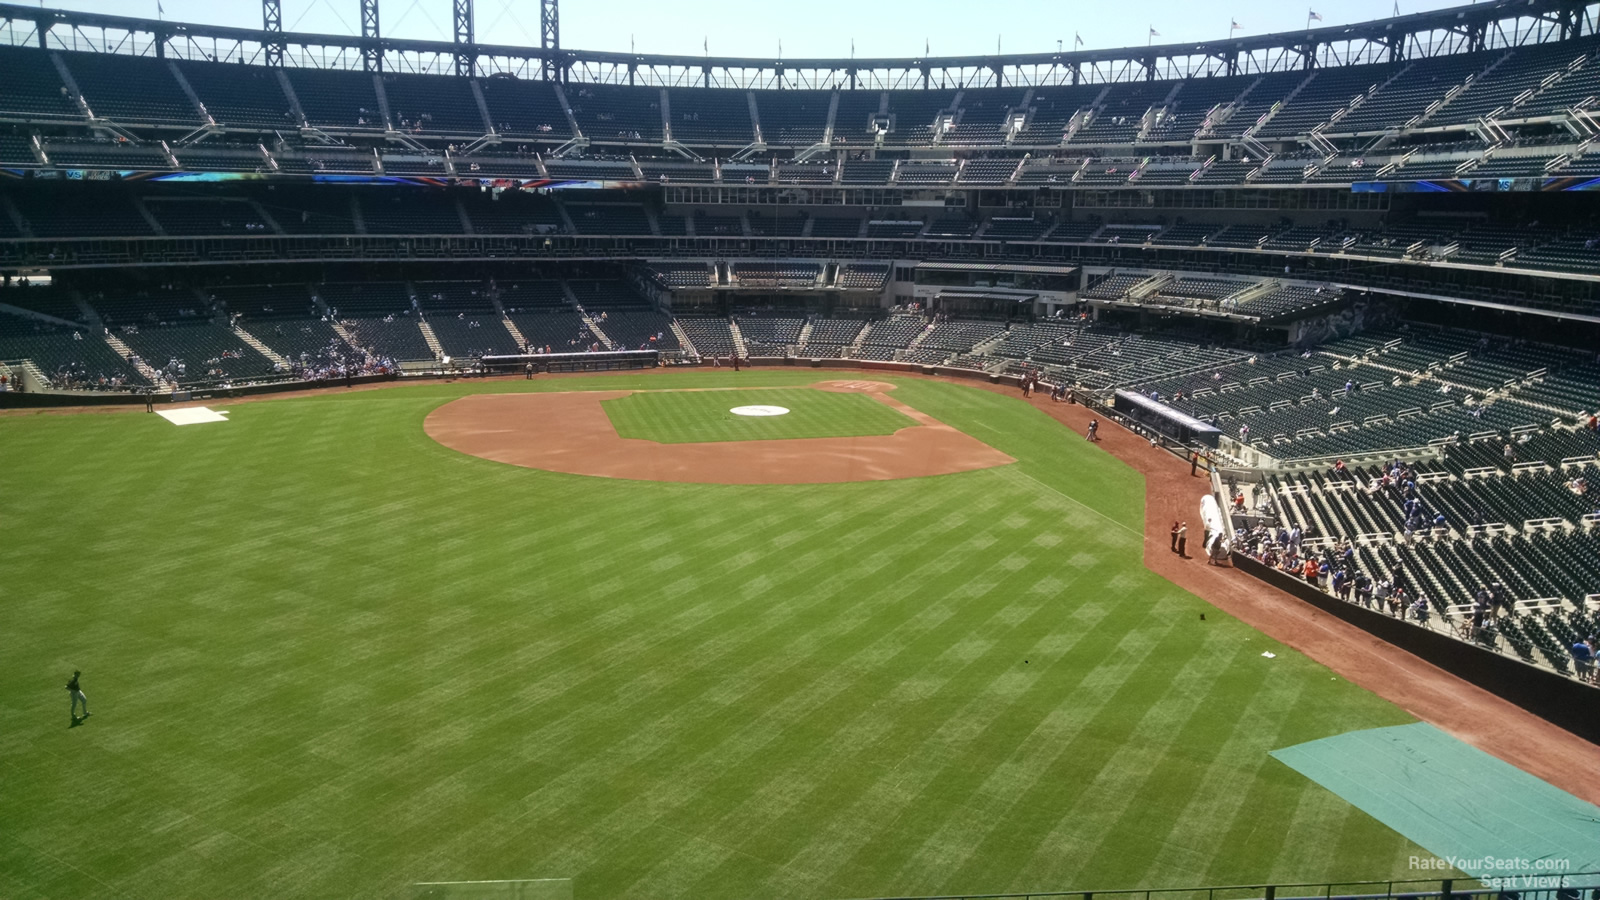 Citi Field Section 335 - RateYourSeats.com